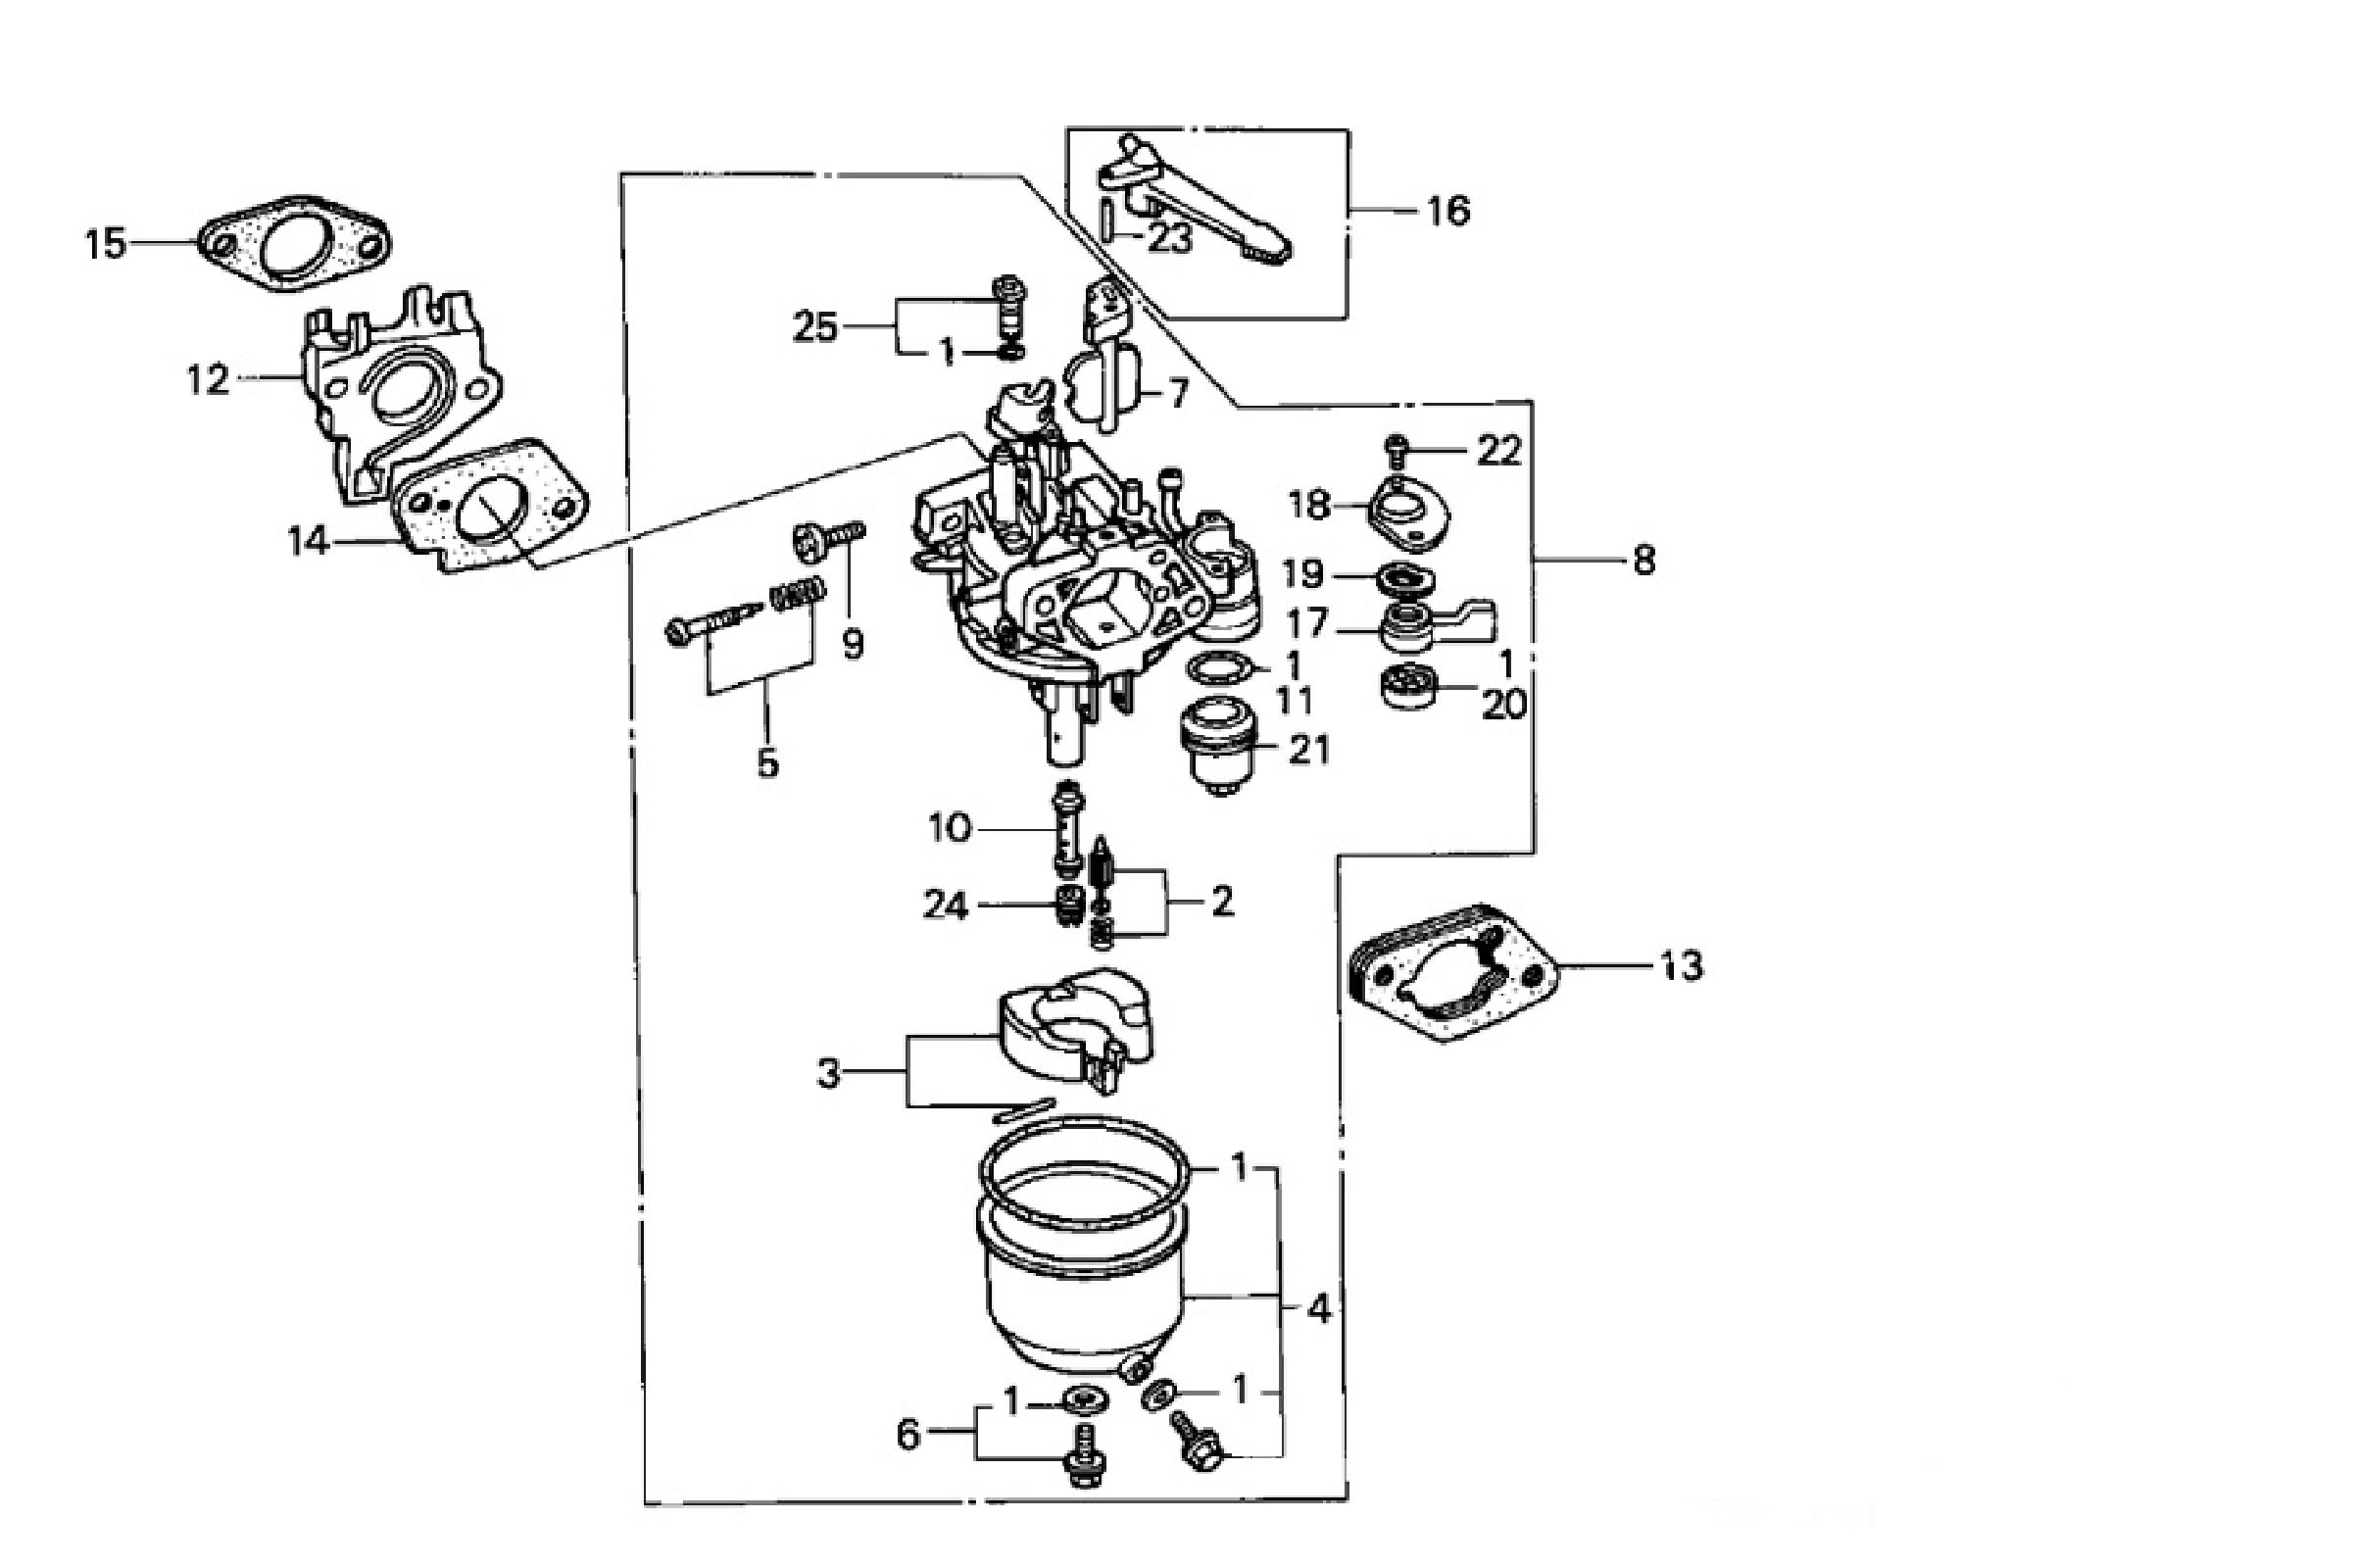 Carb on honda gx240 engine parts diagram